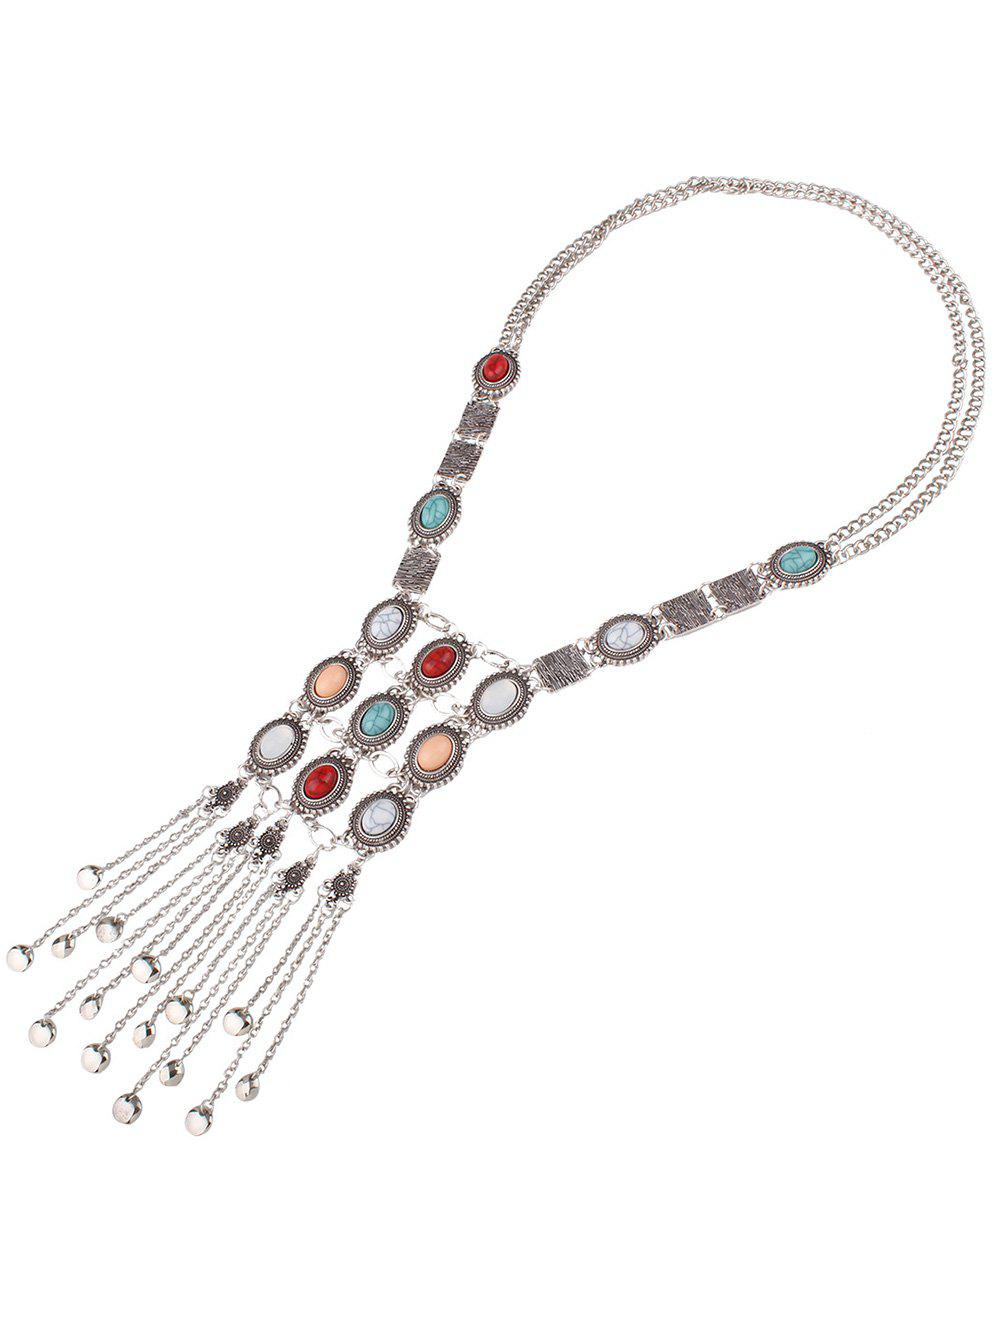 Vintage Carved Alloy Natural Stone Oval Multilayered Fringe Sweater Chain For Women - SILVER GRAY